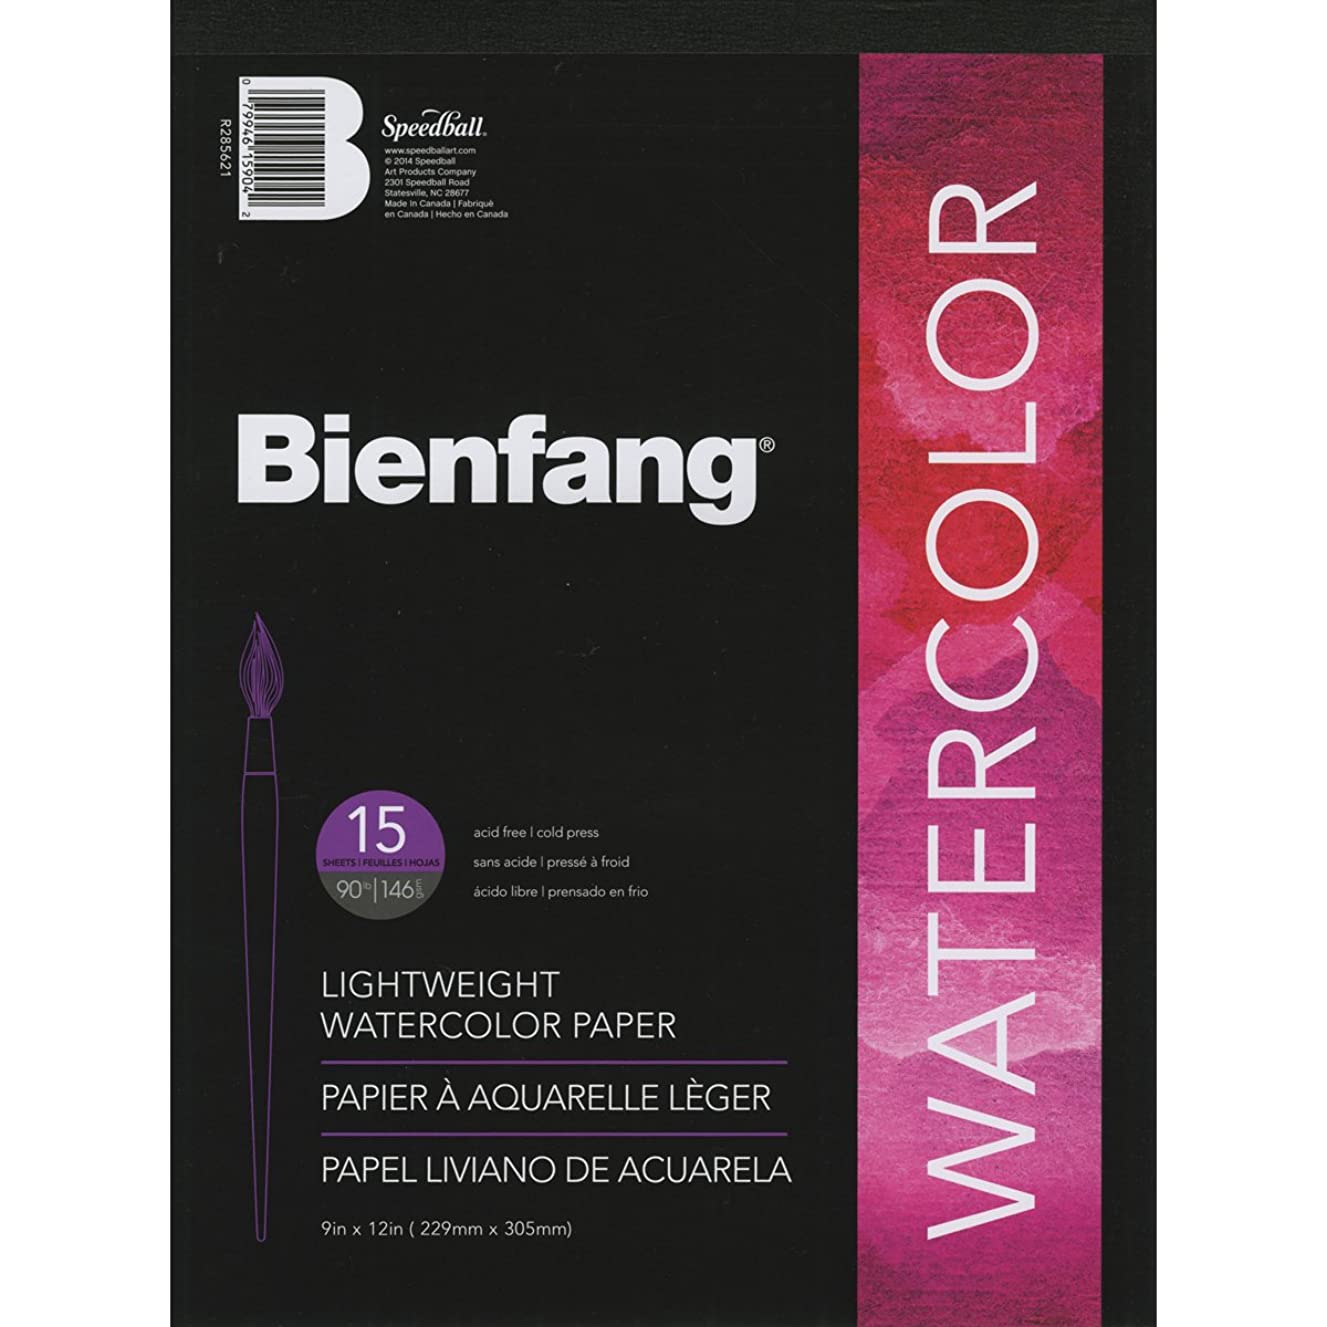 Bienfang Lightweight Watercolor Paper Pad 9-Inch by 12-Inch, 15 Sheets